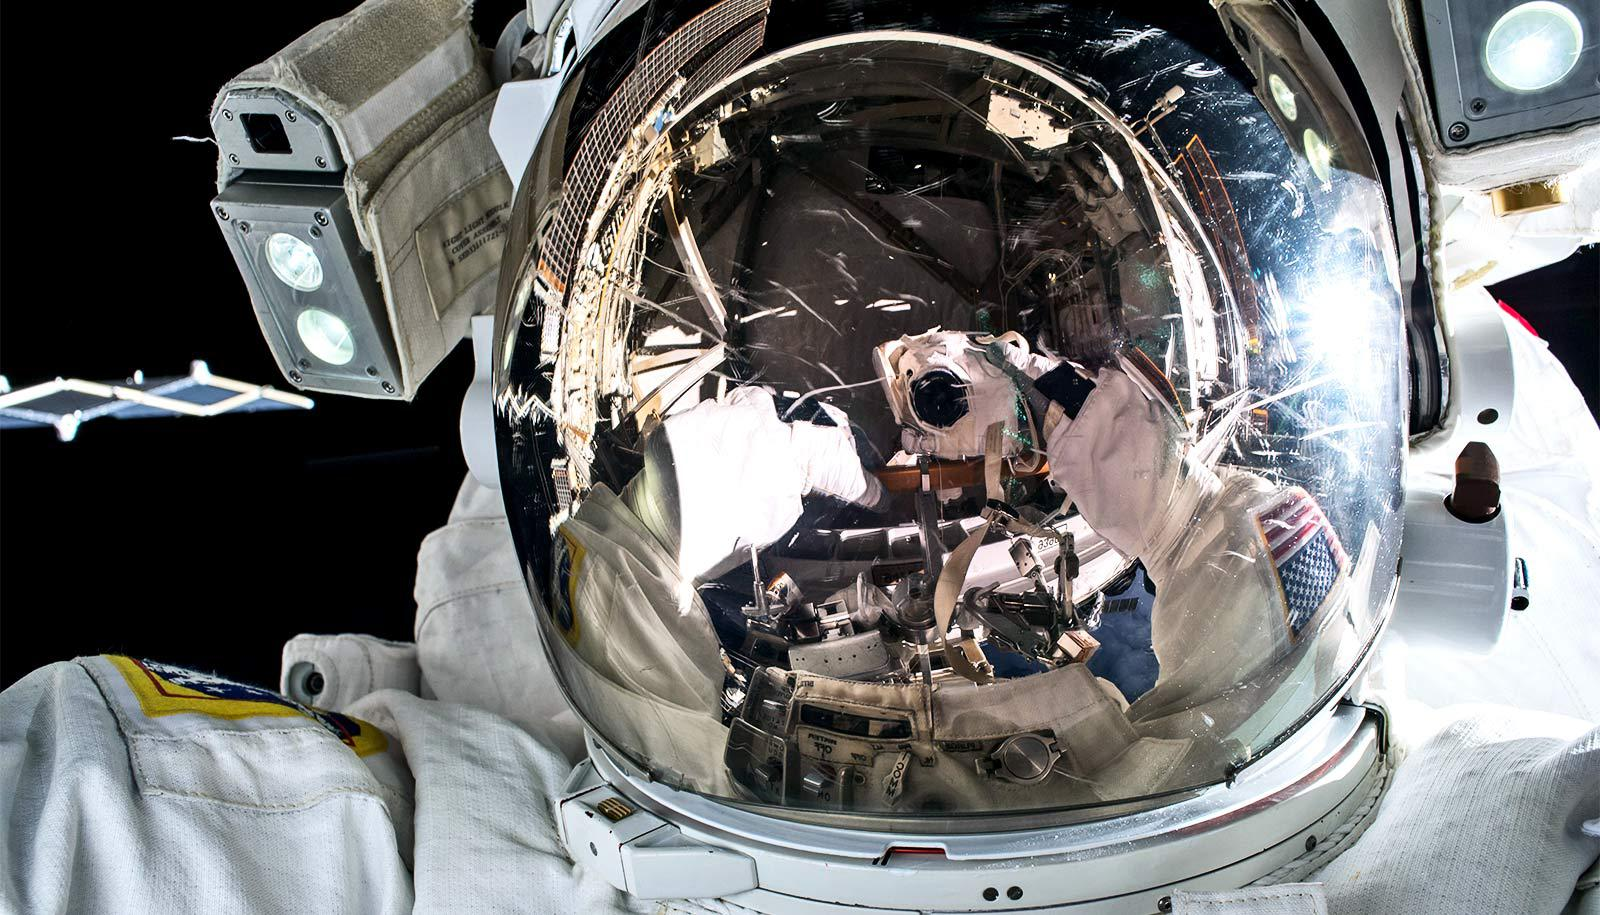 an astronaut's helmet shows the reflection of the astronaut taking a self-portrait photograph.